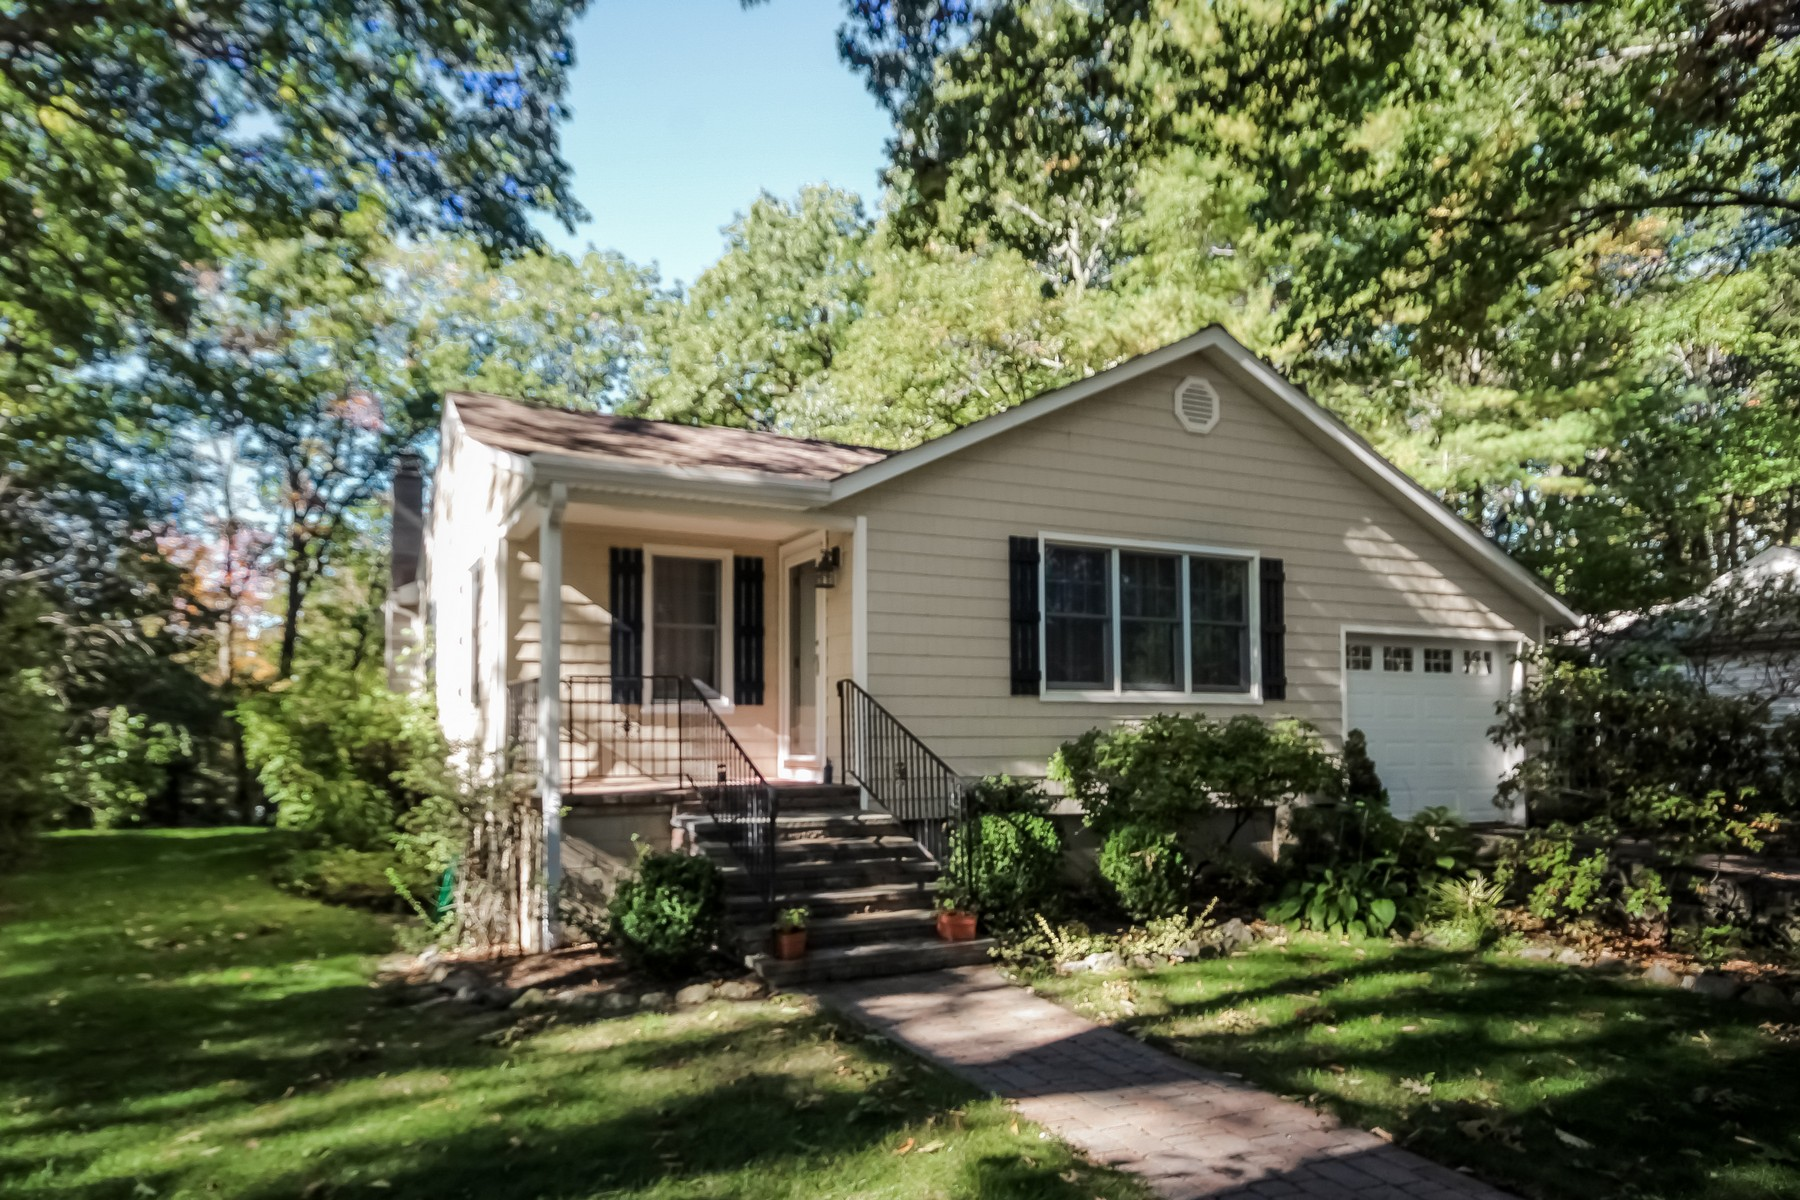 Single Family Home for Sale at Lake Waubeeka Charmer 126 Carol Street Danbury, Connecticut, 06810 United States